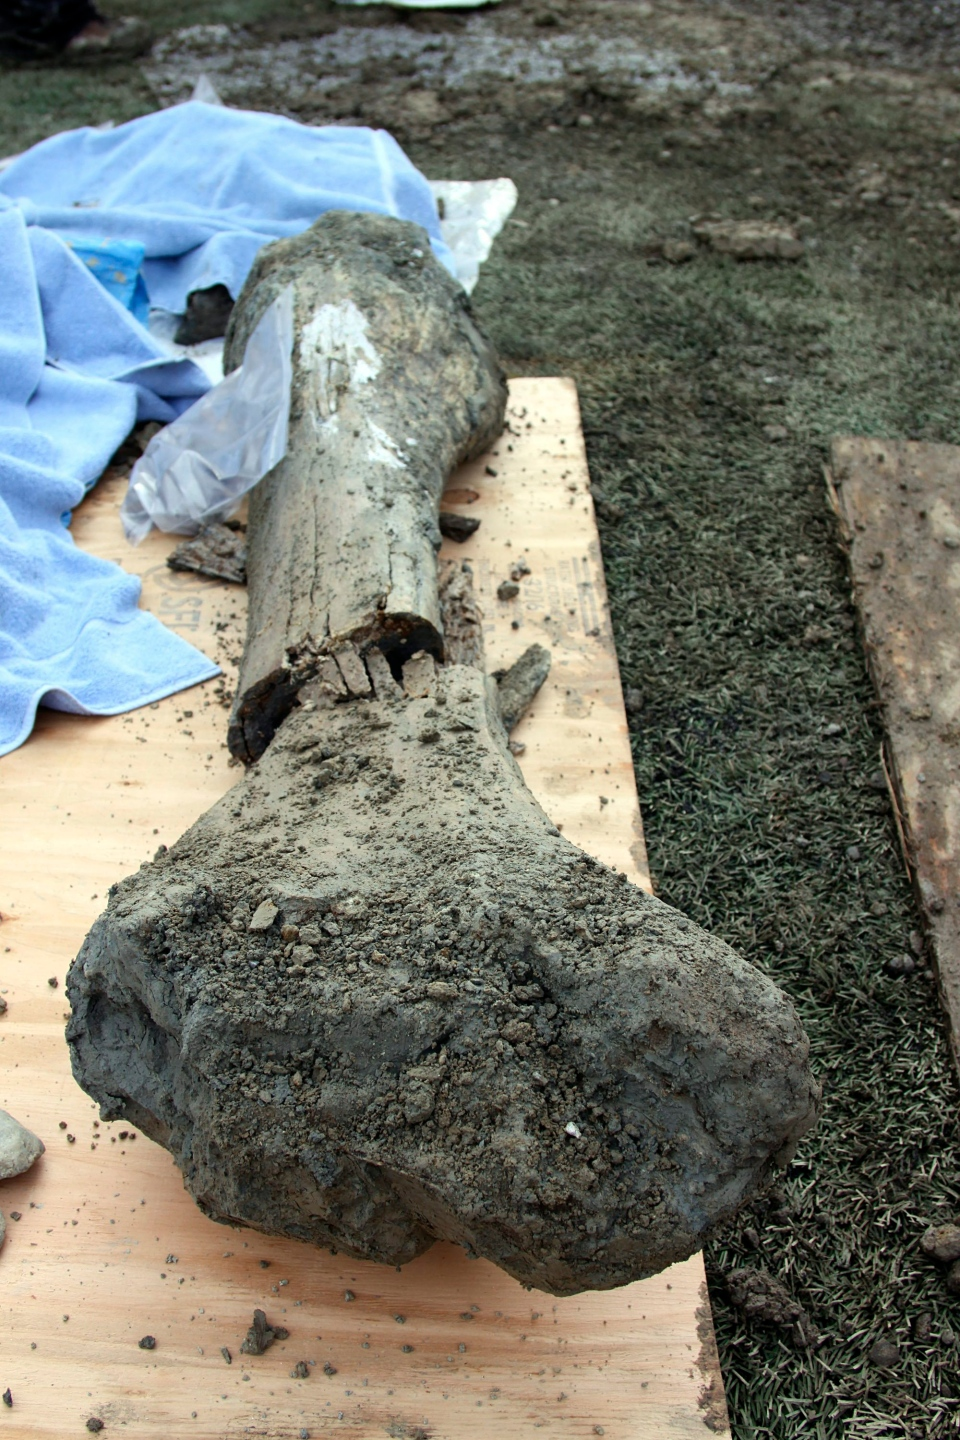 In this Jan. 26, 2016 photo provided by Oregon State University, is the femur of a mammoth found at an OSU construction site by a football field in Corvallis, Ore. (Theresa Hogue / Oregon State University)